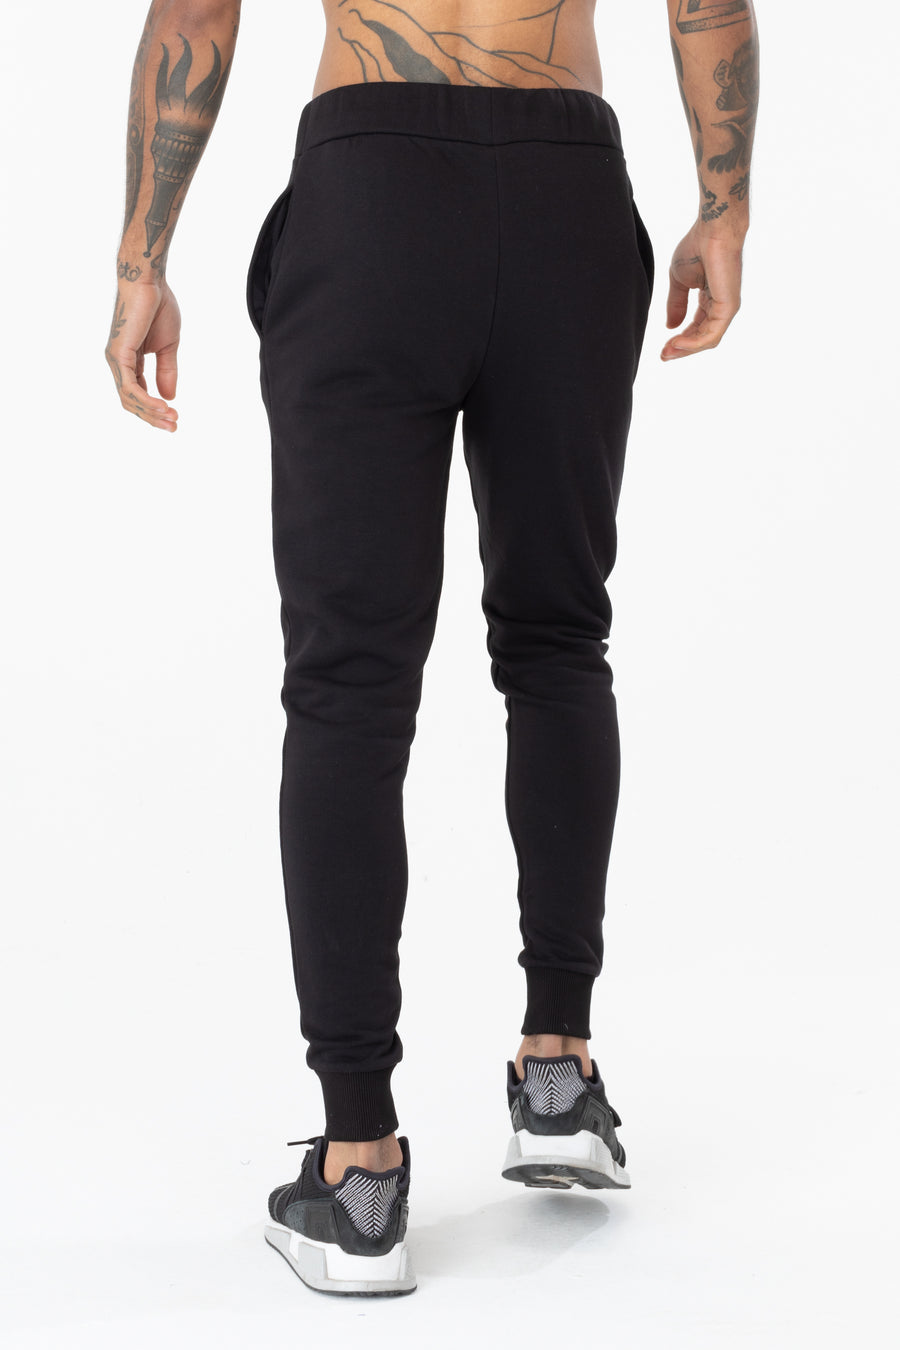 HYPE MEN'S DRAWSTRING BLACK JOGGERS